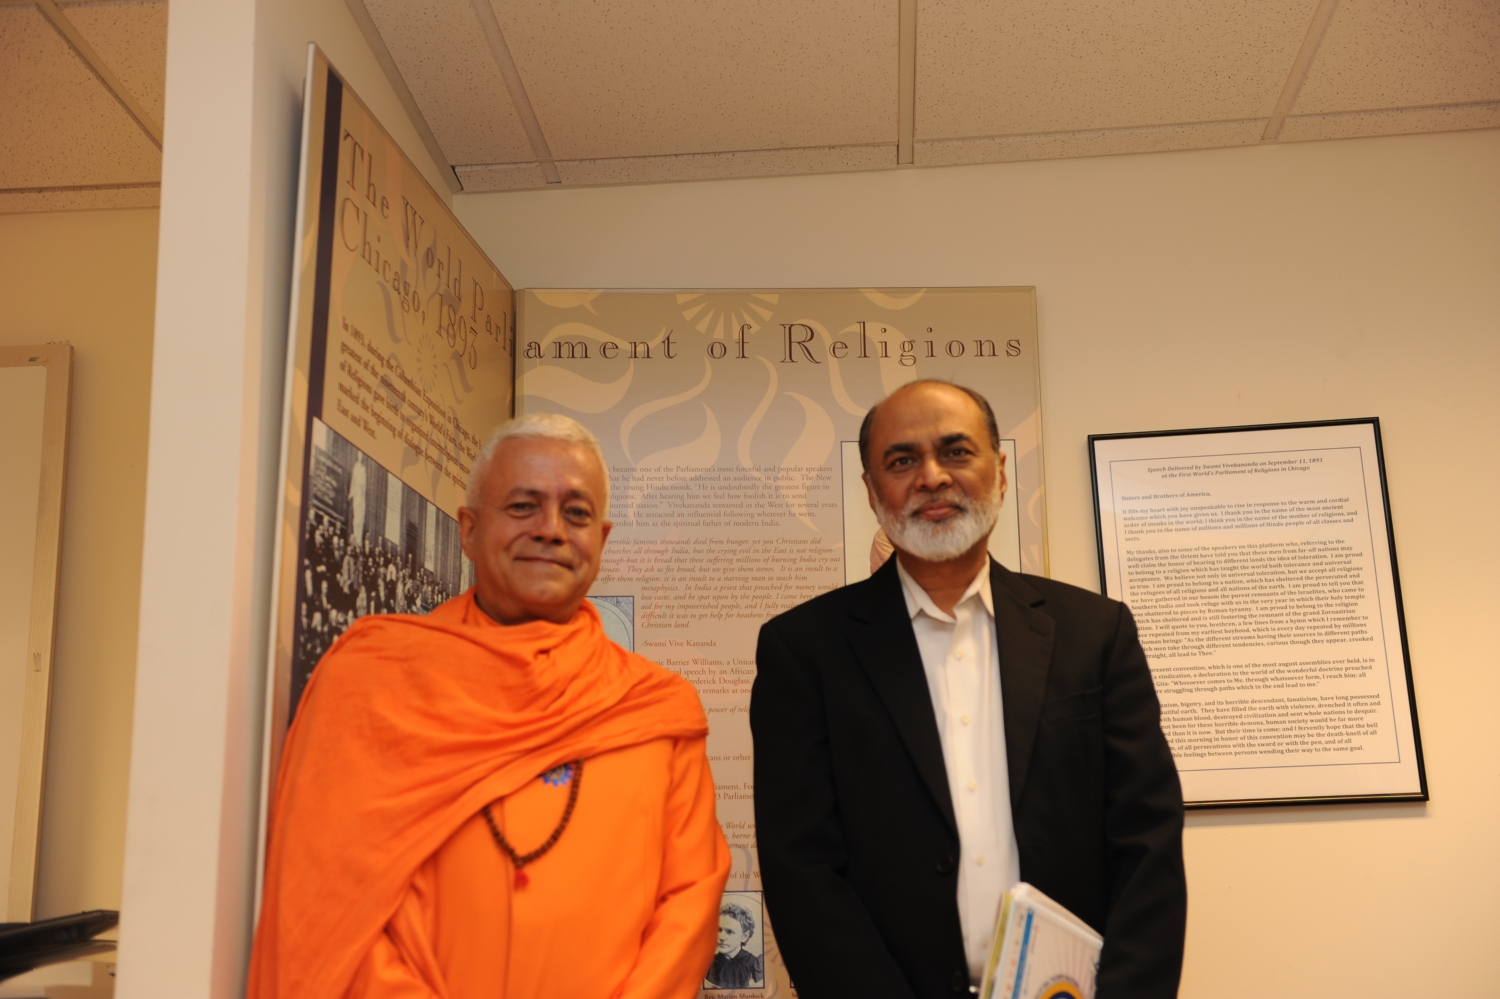 Com Imam Abdul Malik Mujahid, Presidente do Parliament of the World's Religions